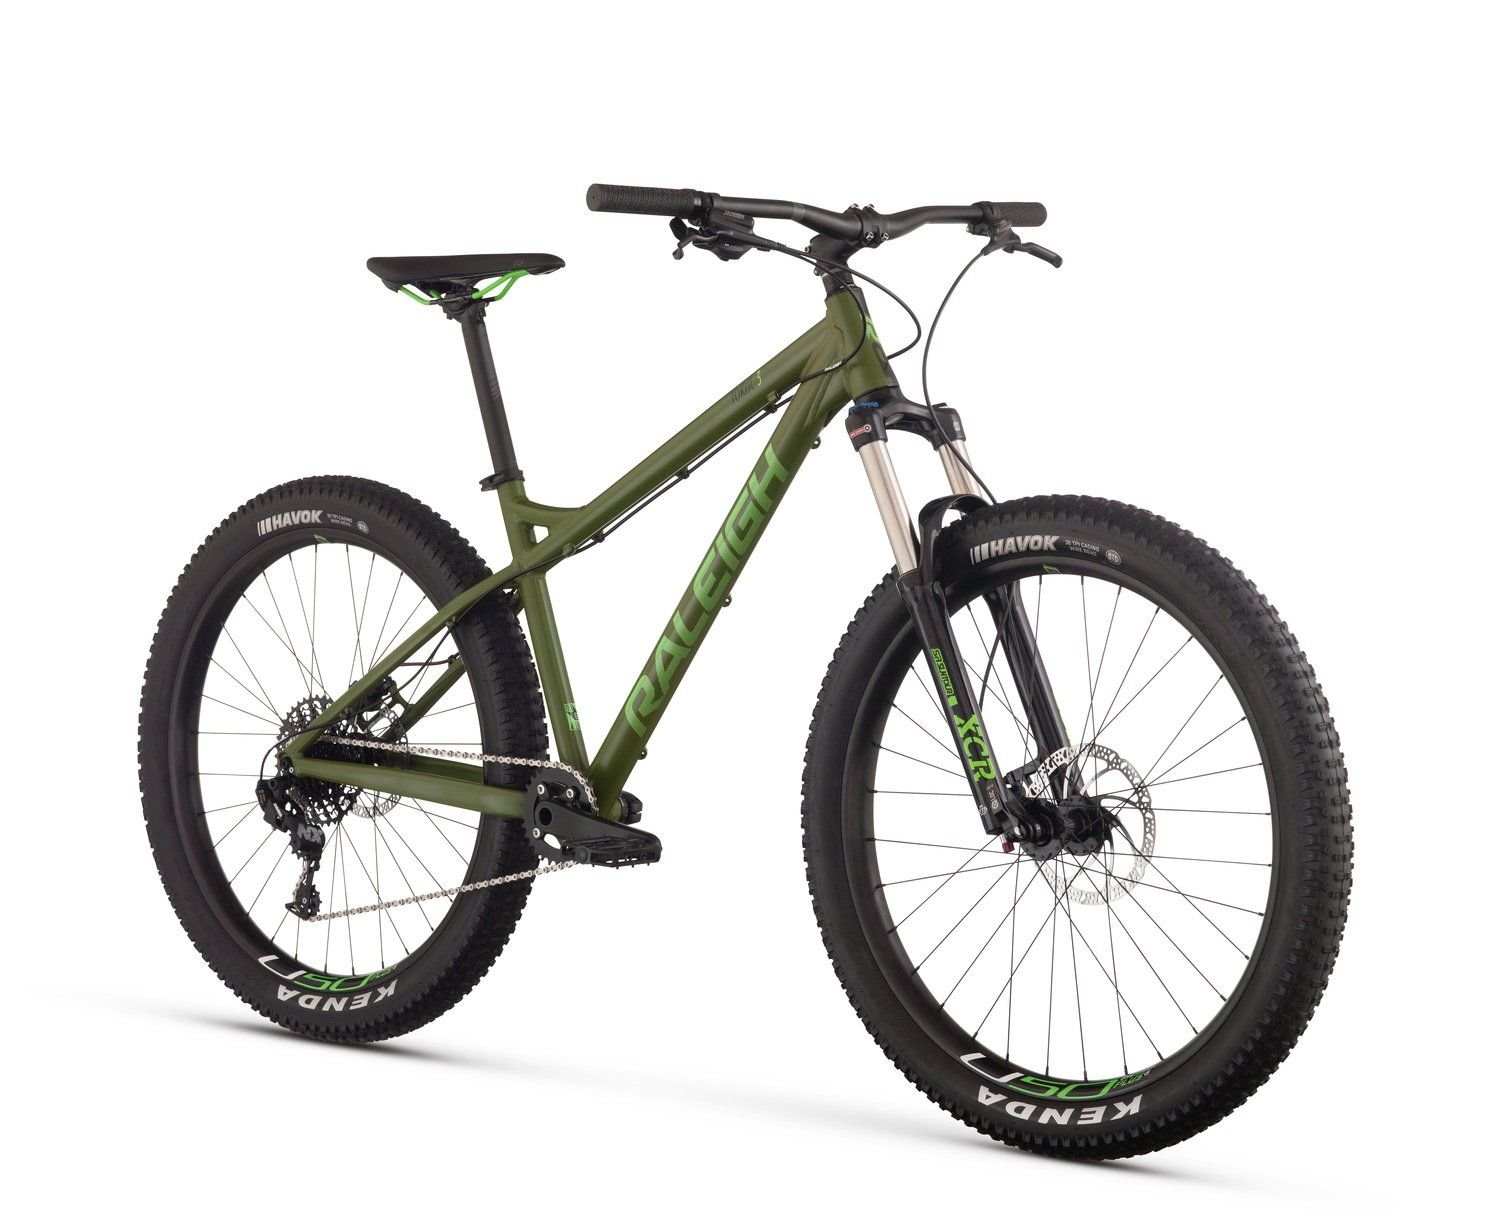 Raleigh Bikes Tokul 3 Mountain Bike 19 Large Sizing S 5 3 5 6